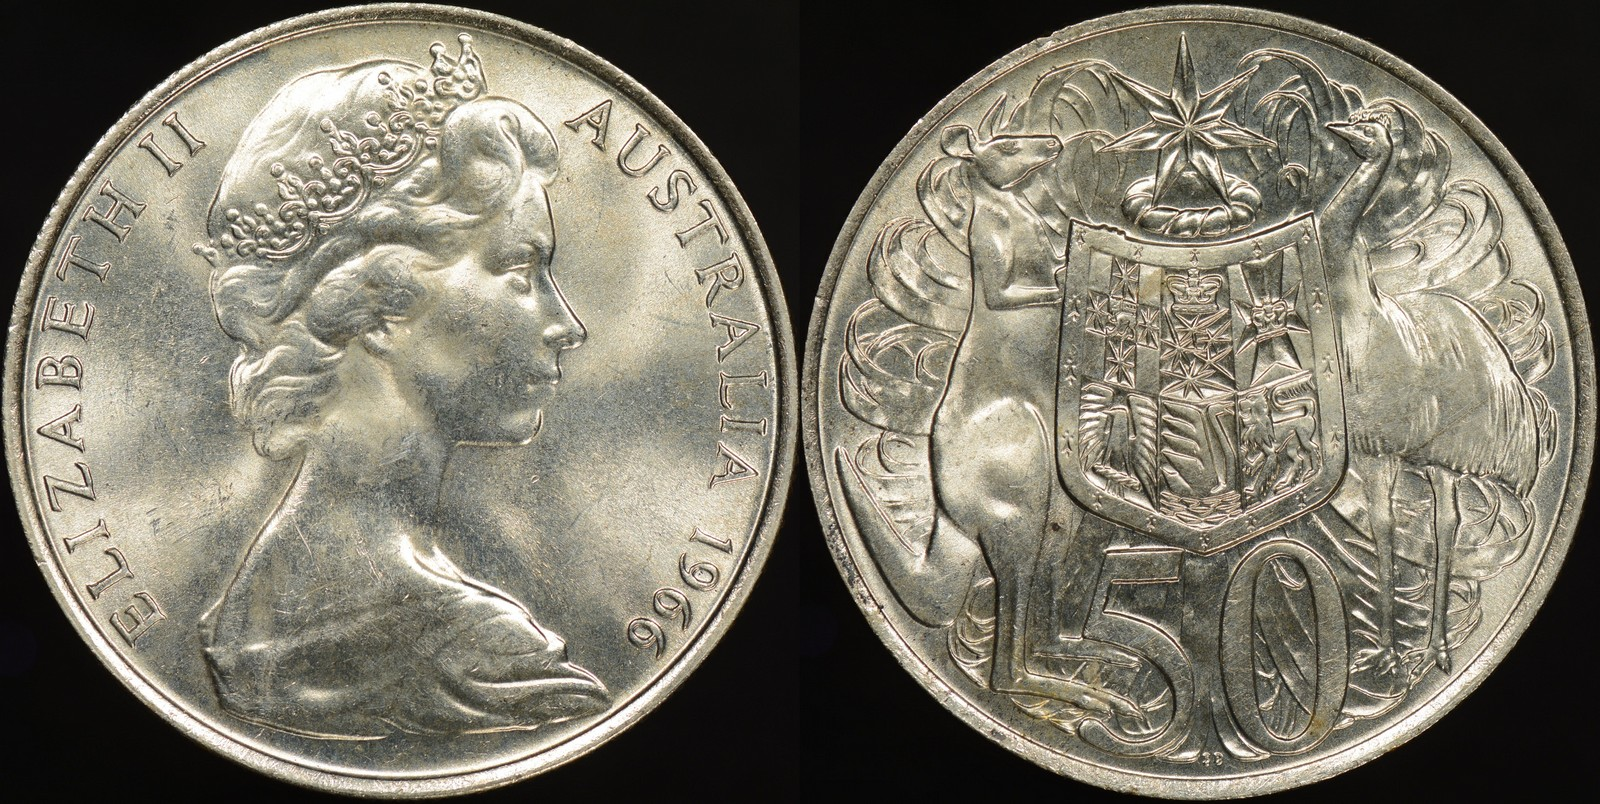 Australia Uncirculated 1966 Silver 50 Cent Coin Nice